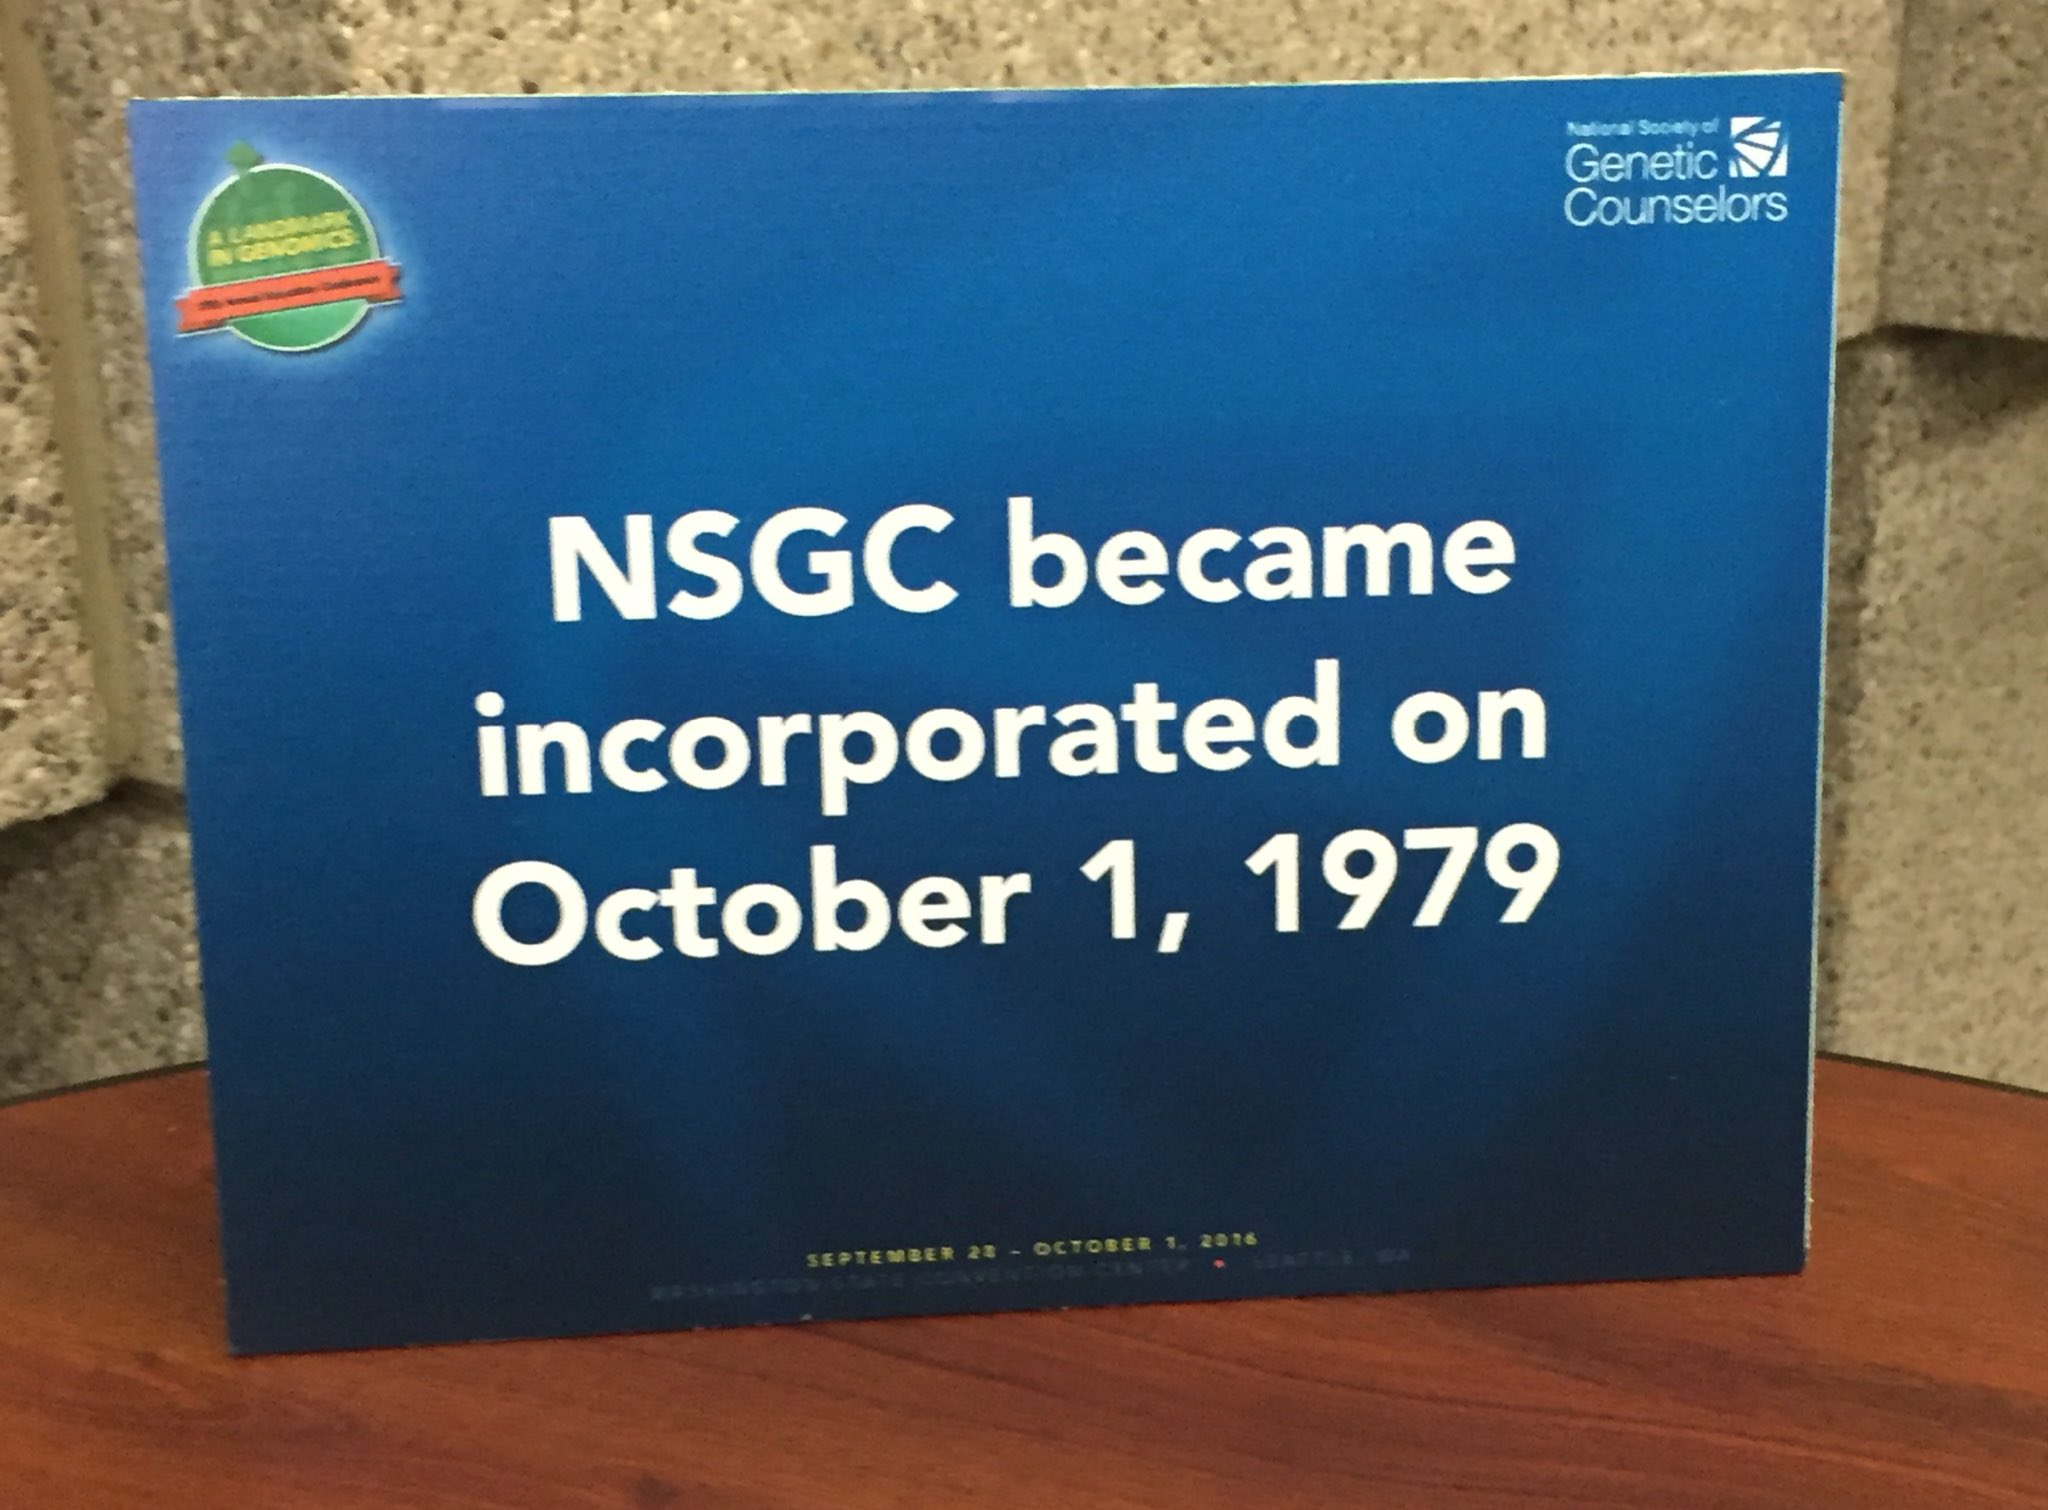 *Today* is actually the 35th anniversary of NSGC (@GeneticCouns) becoming incorporated! #HowCoolIsThat?! #NSGC16 :) https://t.co/C0AYbV86vP